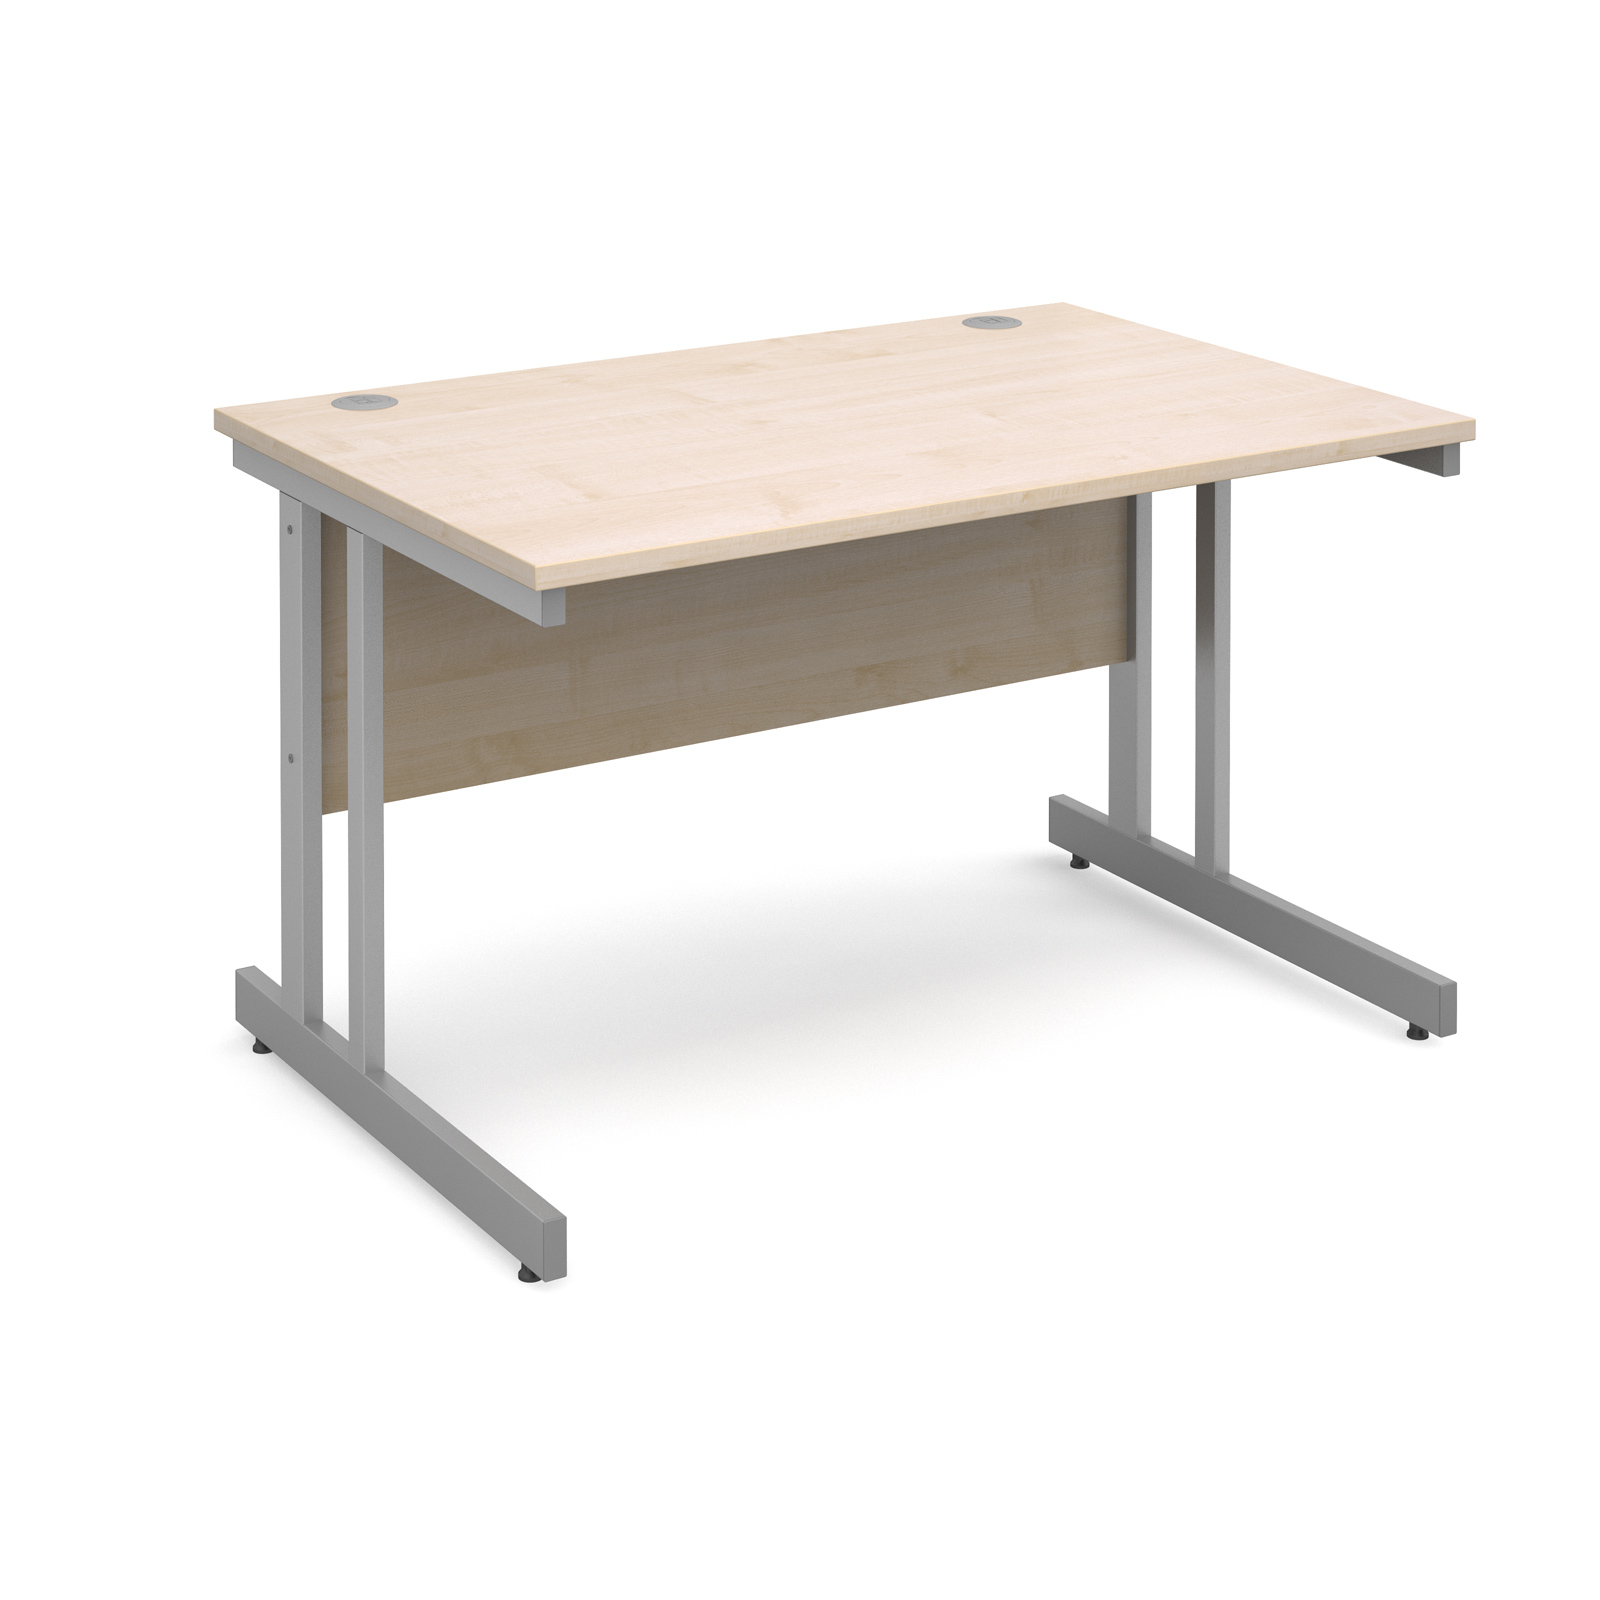 Momento straight desk 1200mm x 800mm - silver cantilever frame, maple top